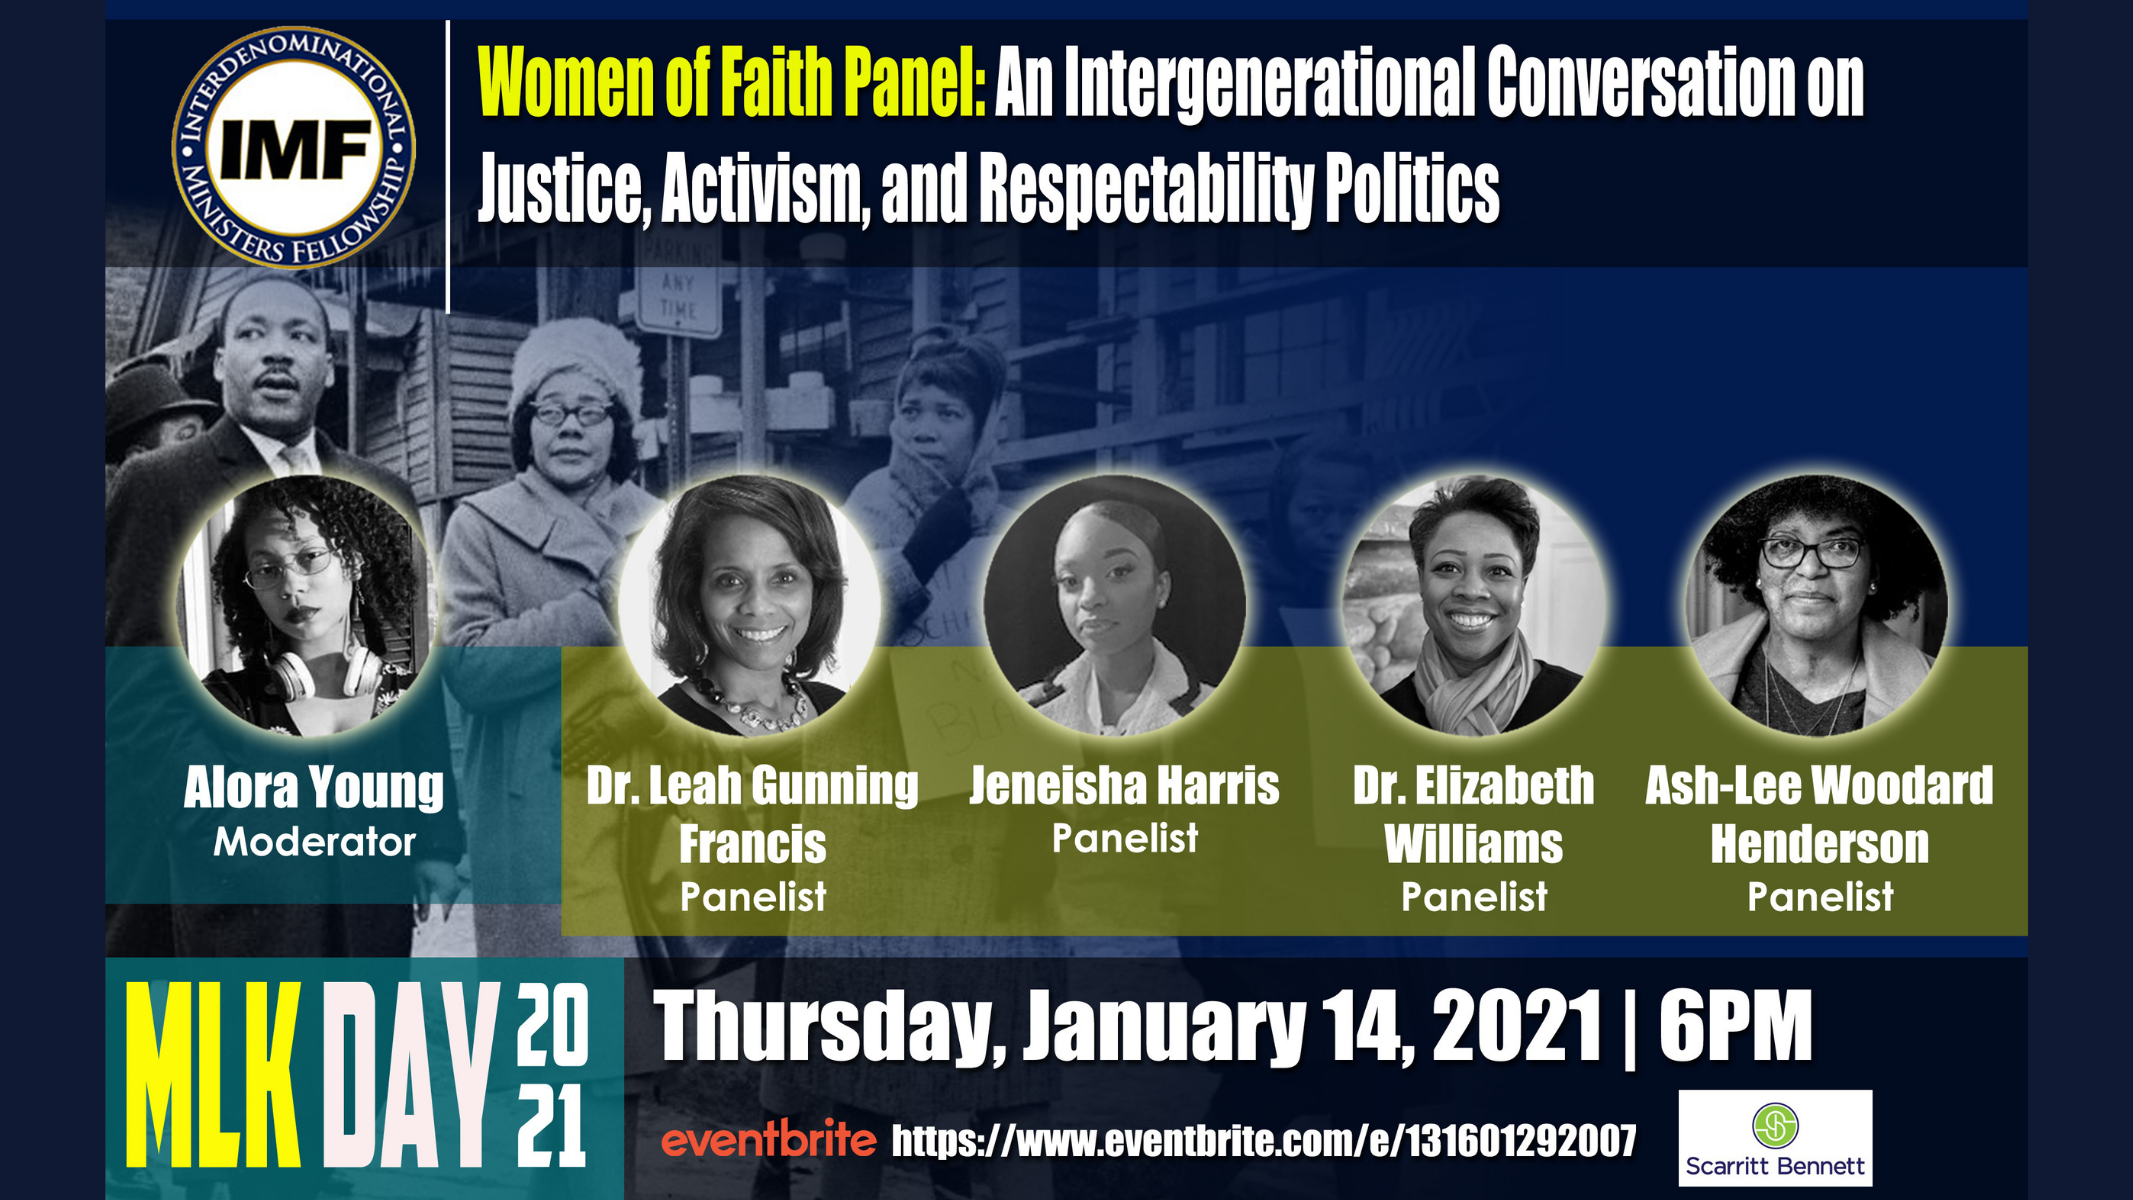 Women of Faith Panel: An Intergenerational Conversation on Justice, Activism and Respectability Politics